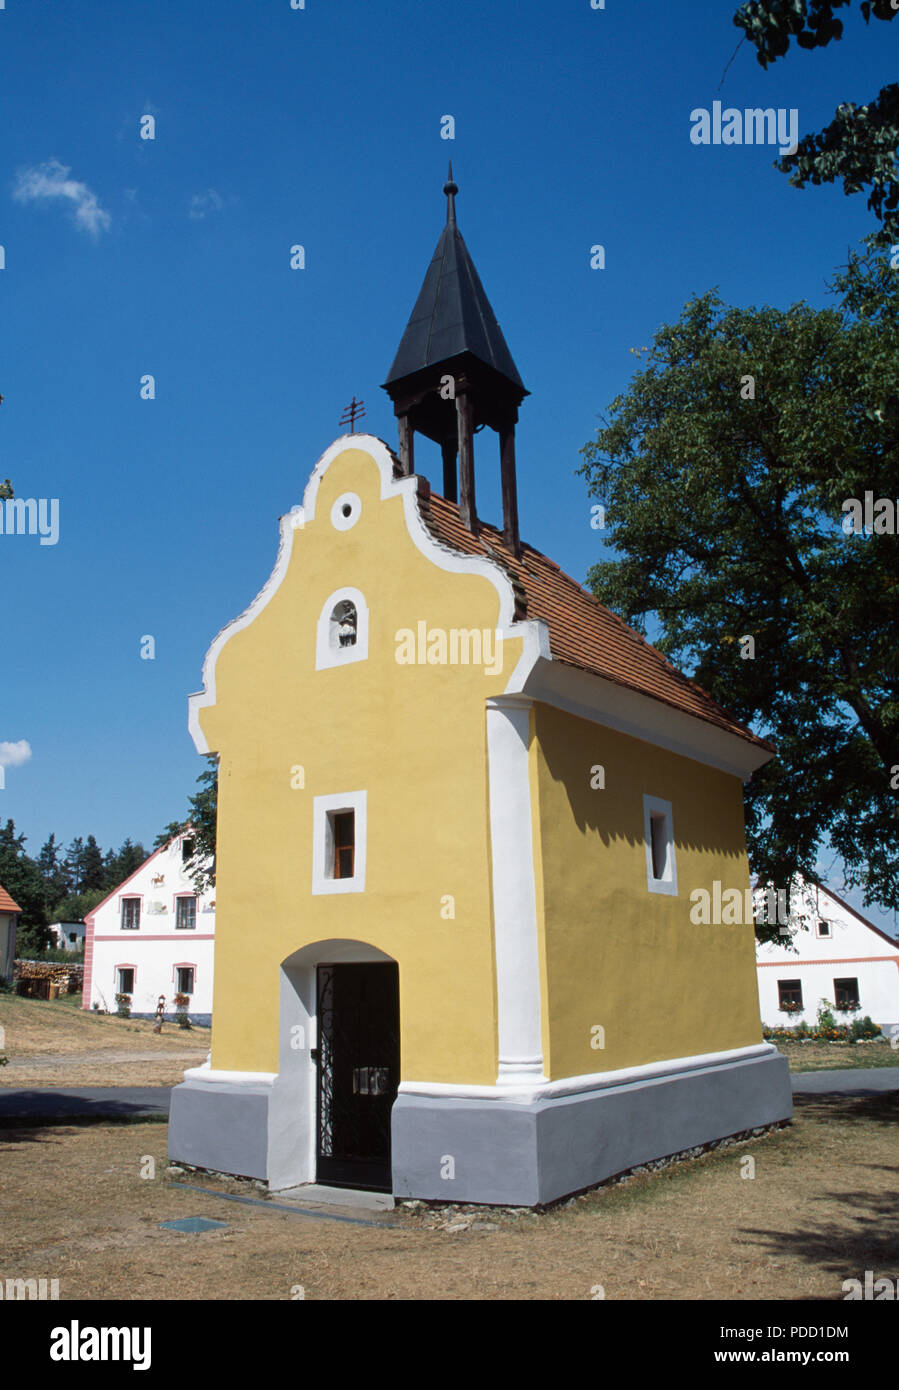 Ochre painted chapel in the historic village of Holasovice in South Bohemia in the Czech Republic - Stock Image